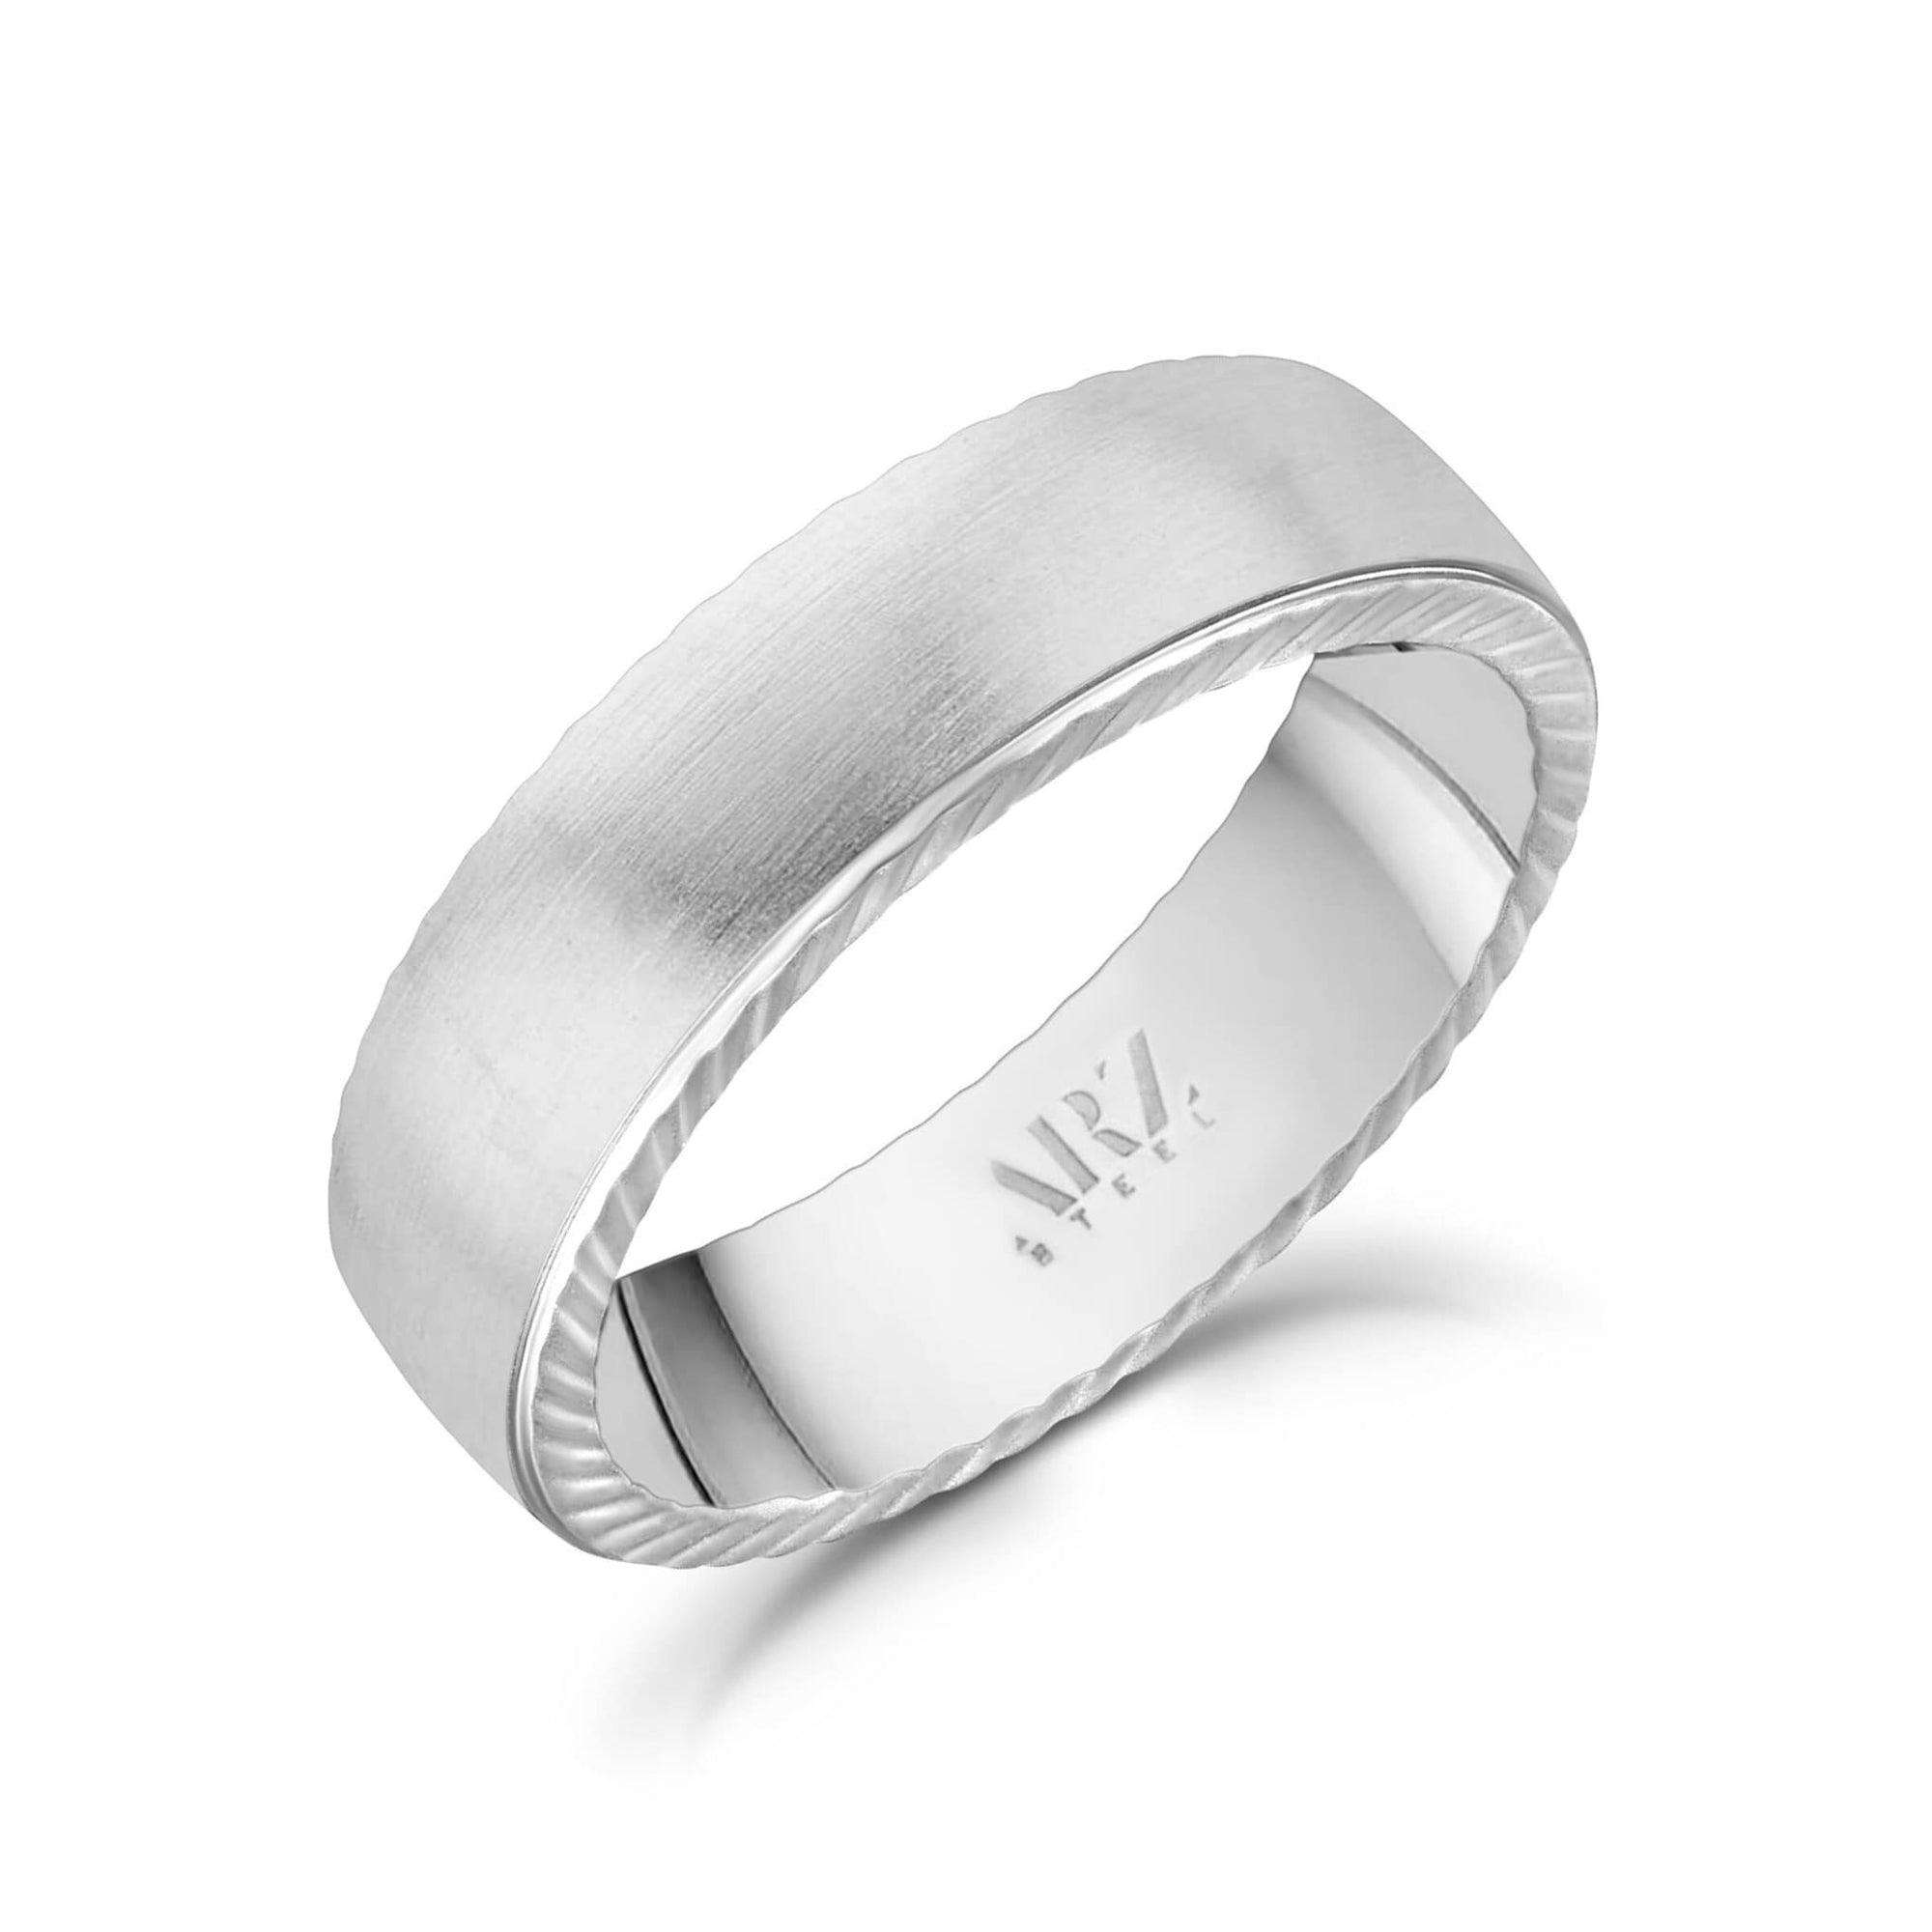 6mm Matte Flat Steel Band Ring at Arman's Jewellers